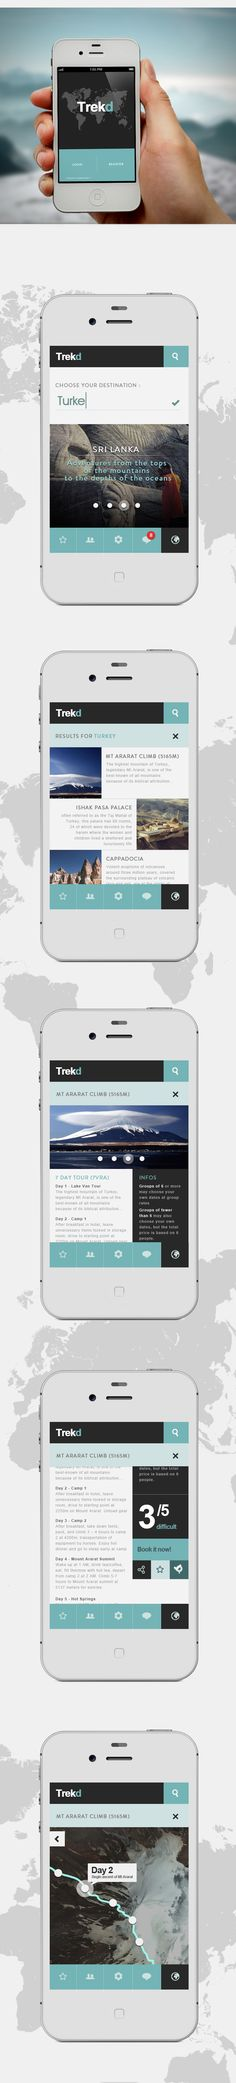 Trekd (app concept) | Designer: Thomas Le Corre  - Watch Create Short Meaningful Videos via Gloopt. https://itunes.apple.com/us/app/gloopt/id885729225